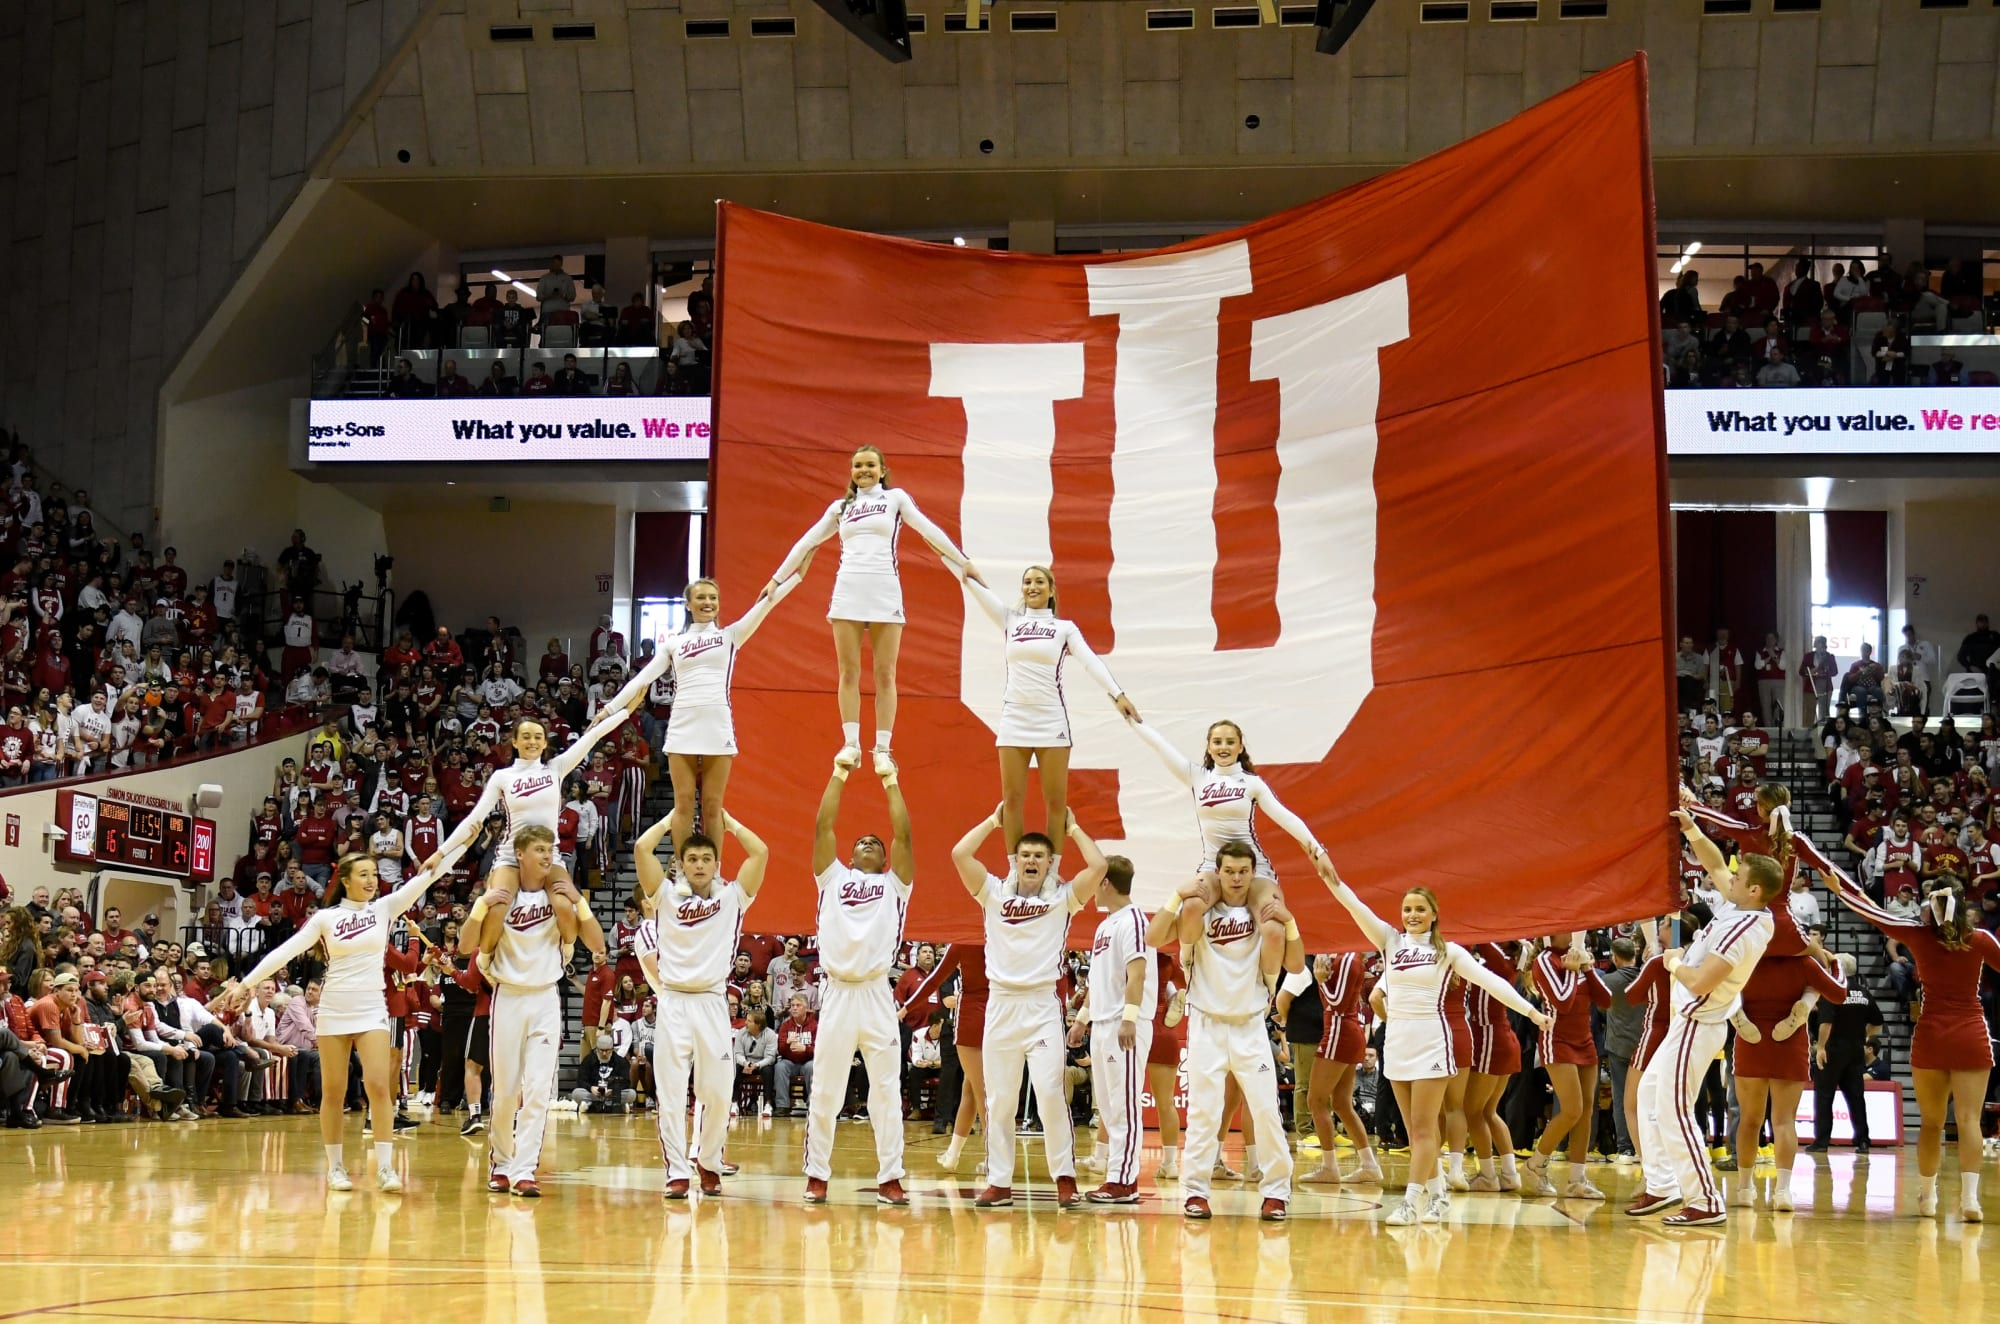 Indiana Basketball: Could Flint's move renew an old rivalry?